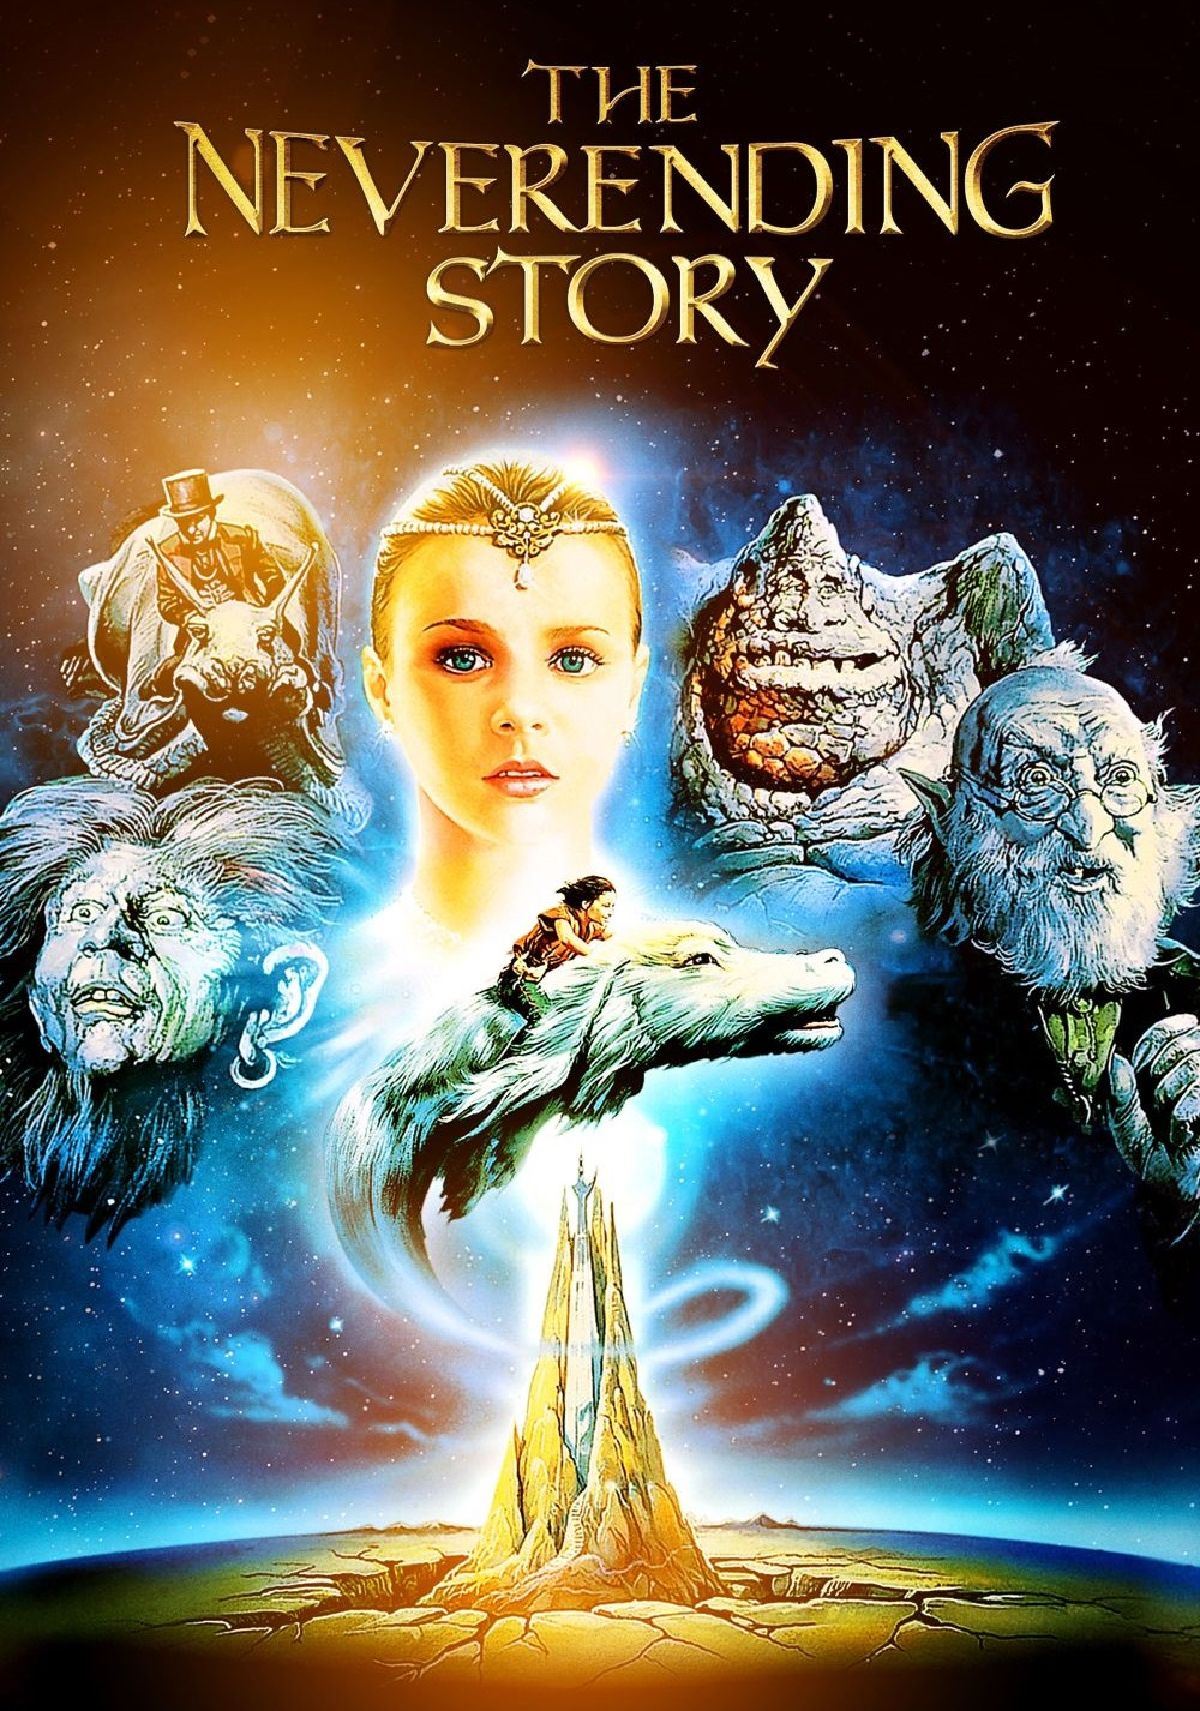 'The Neverending Story' movie poster